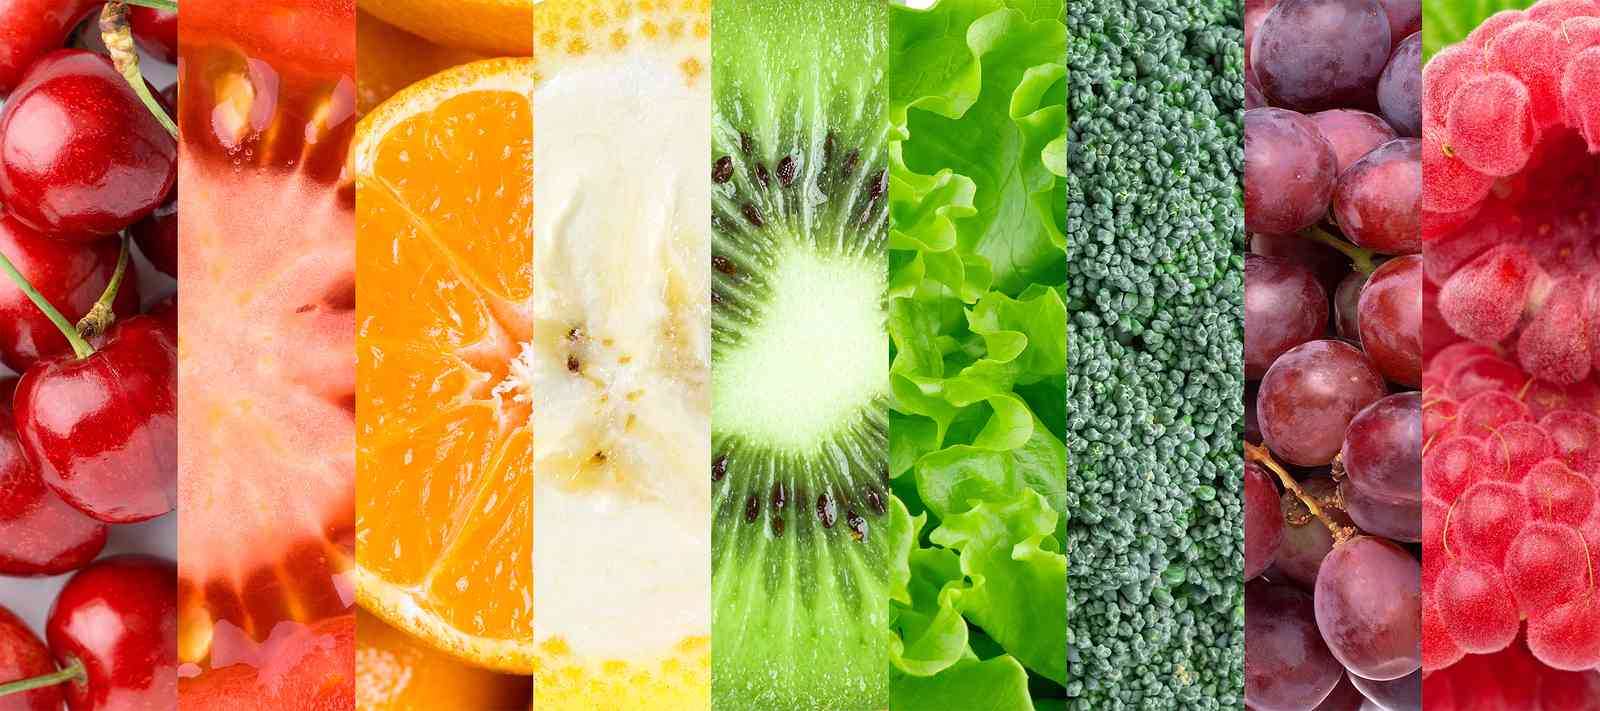 5 Shades of Nutrition